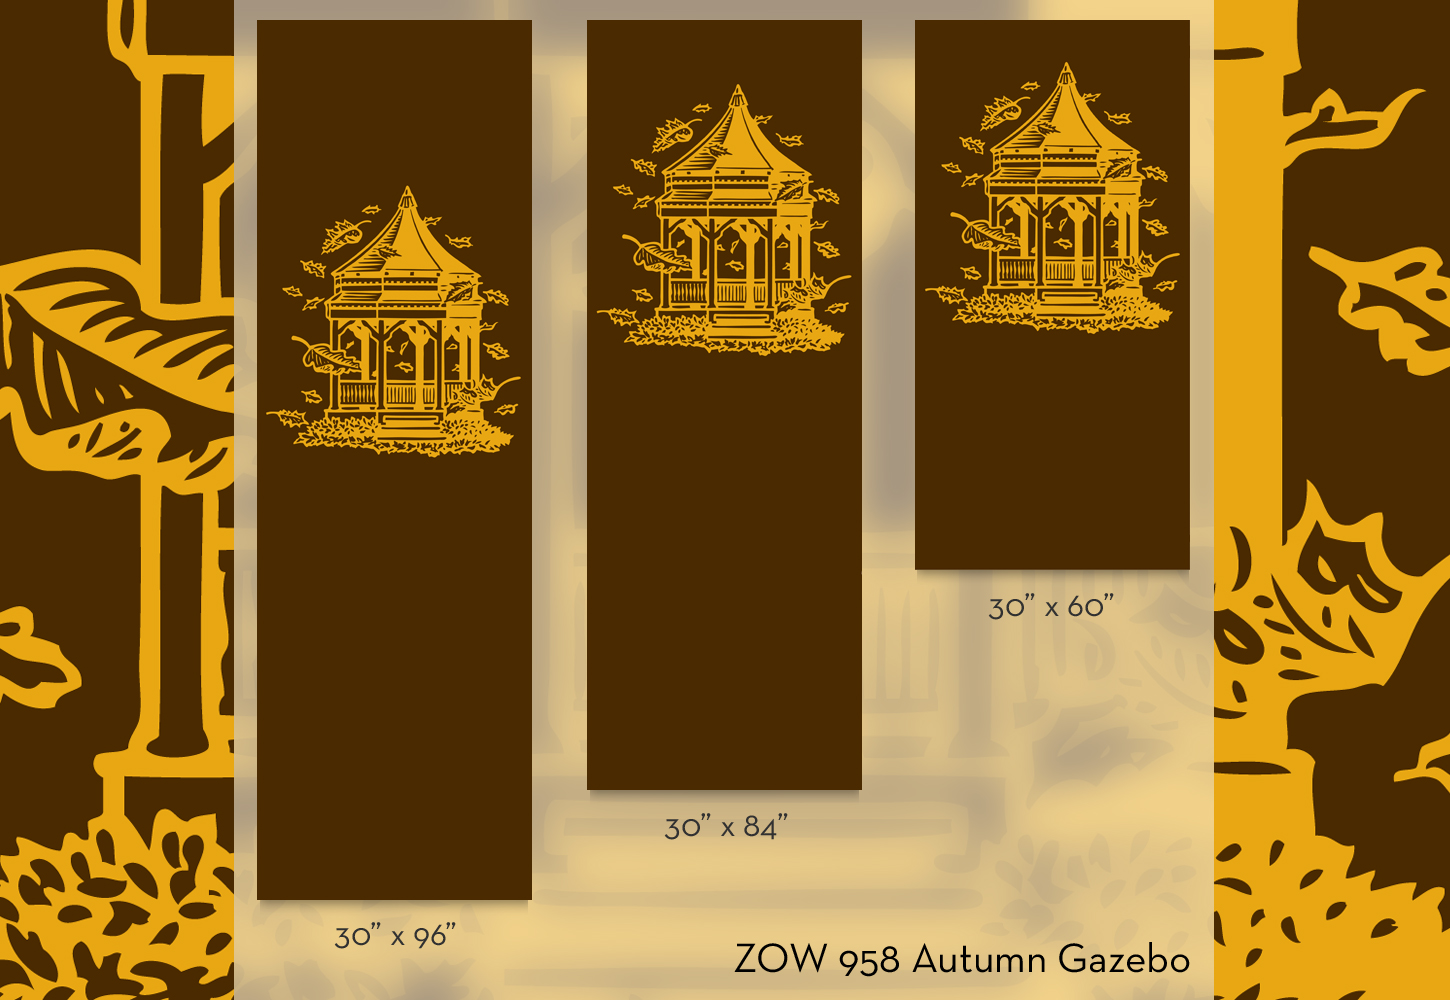 ZOW 958 Autumn Gazebo